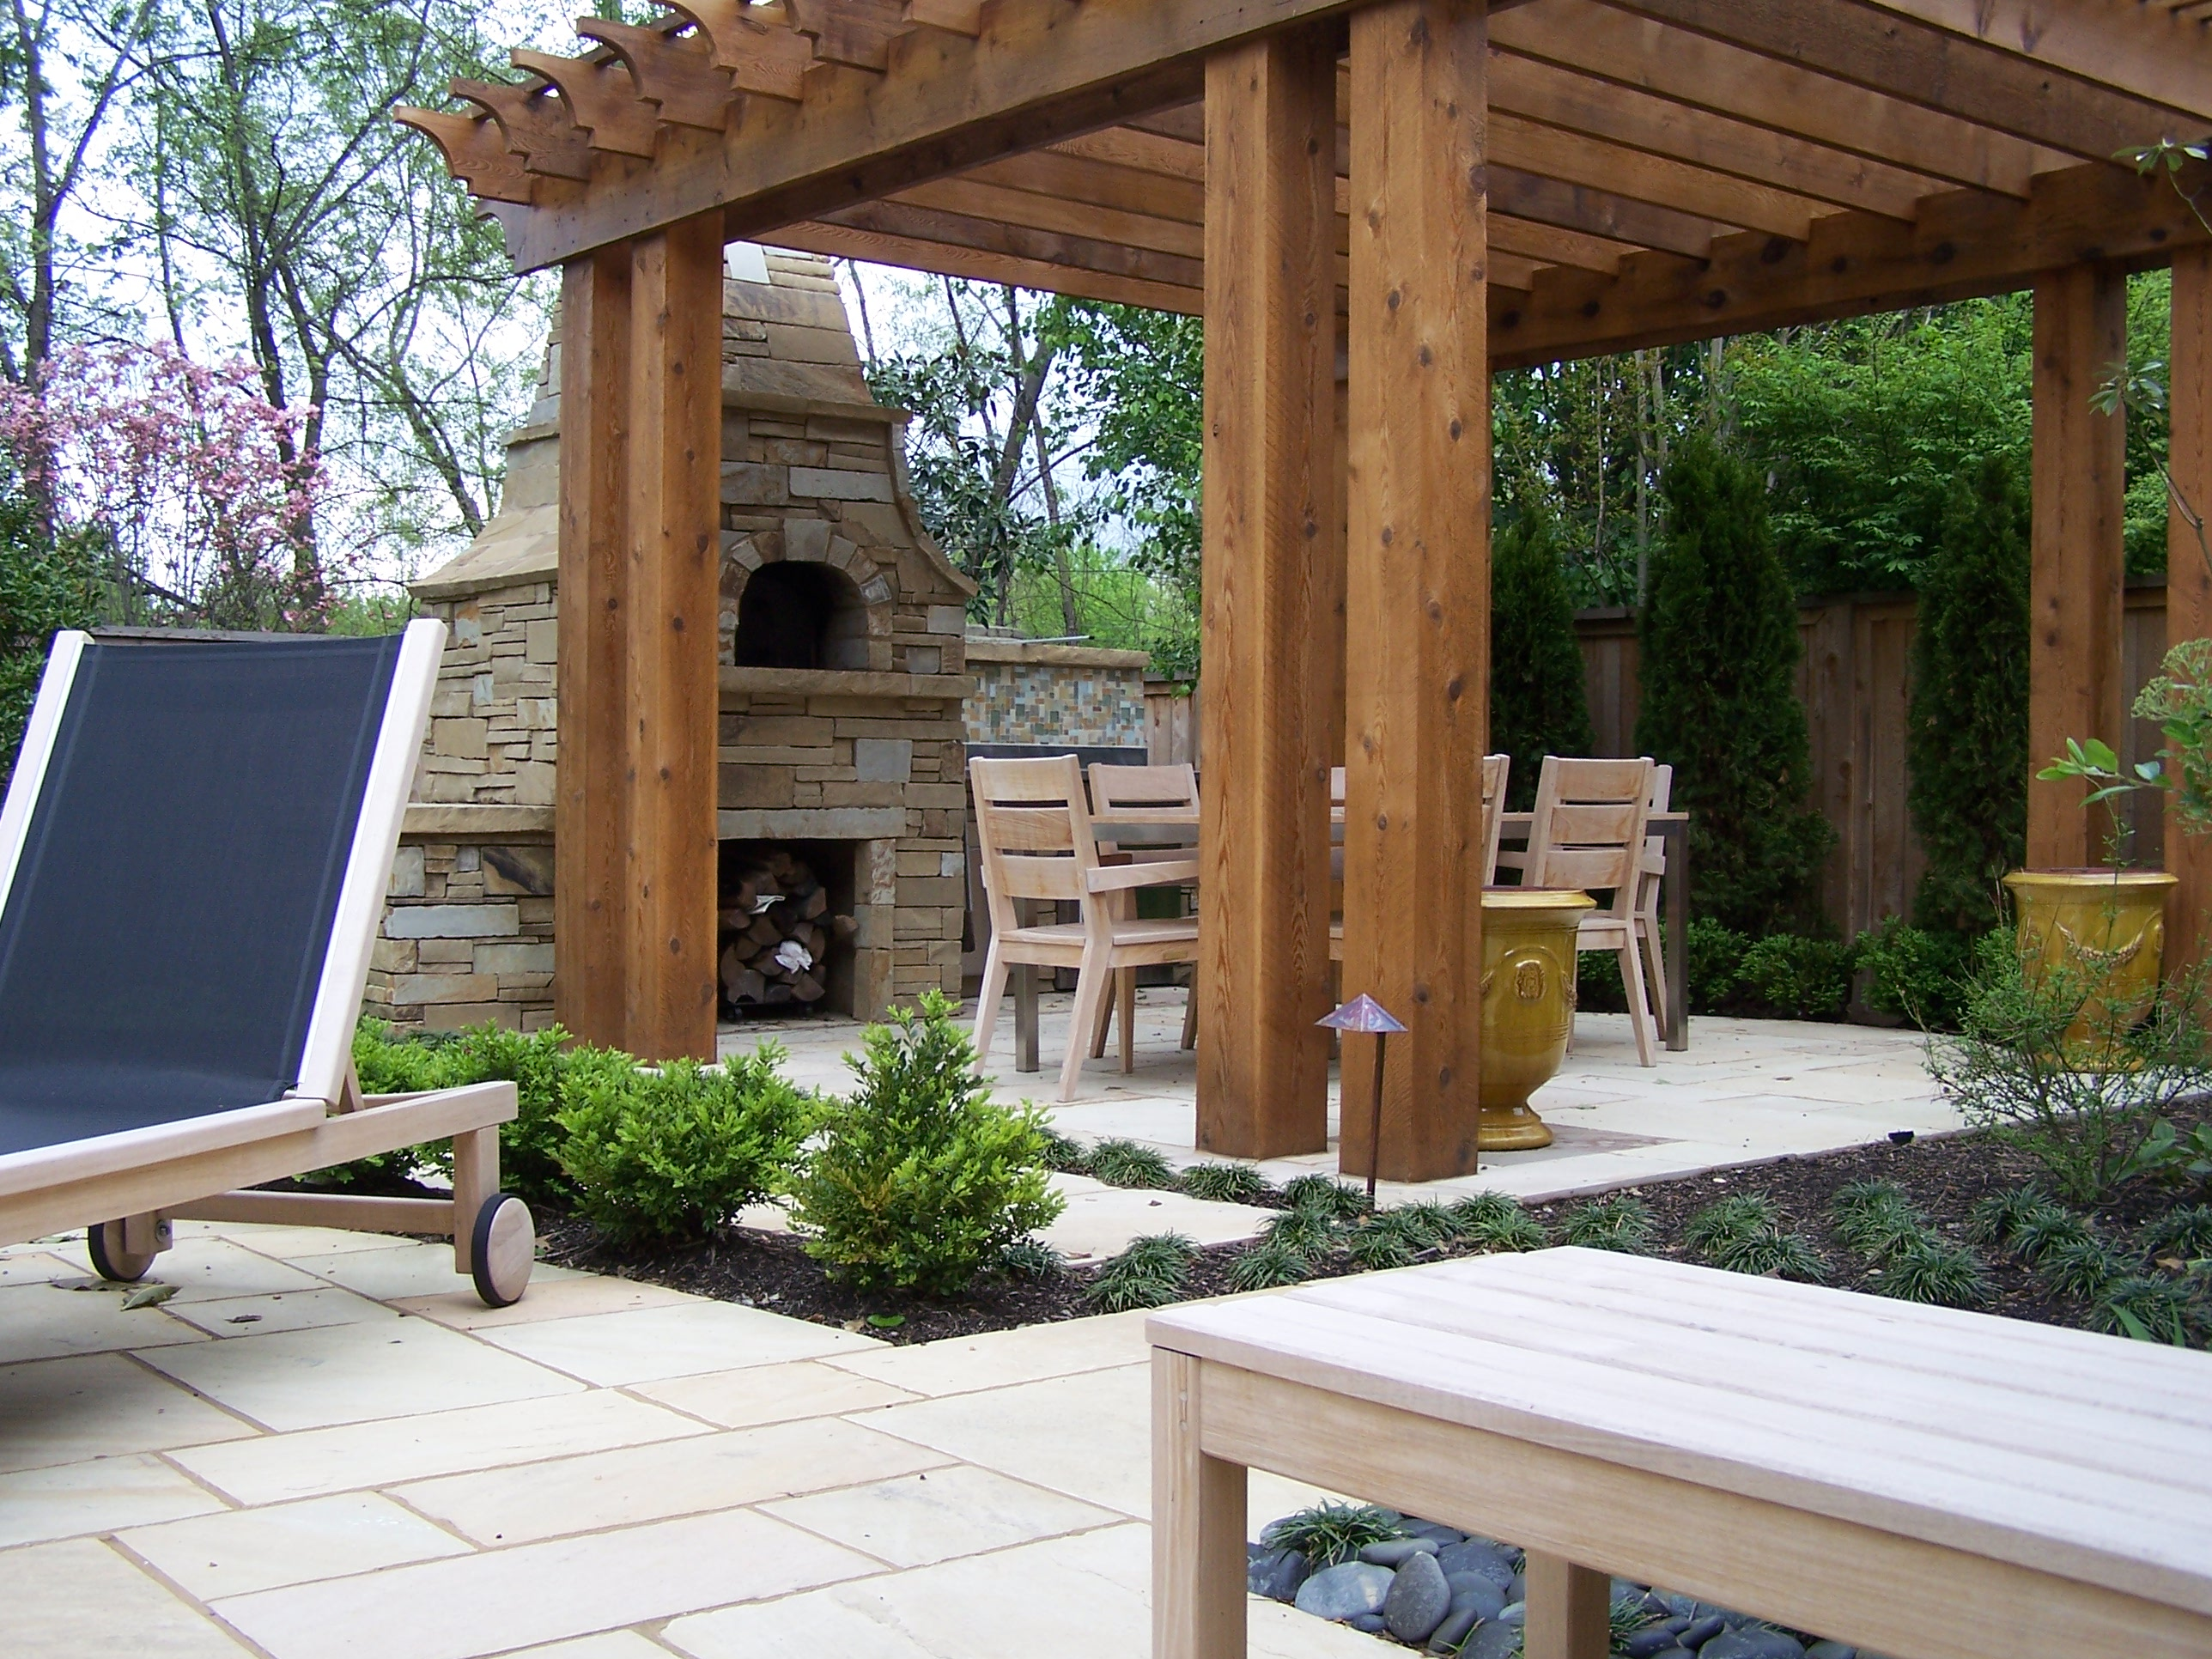 outdoor fireplace and pergola with table